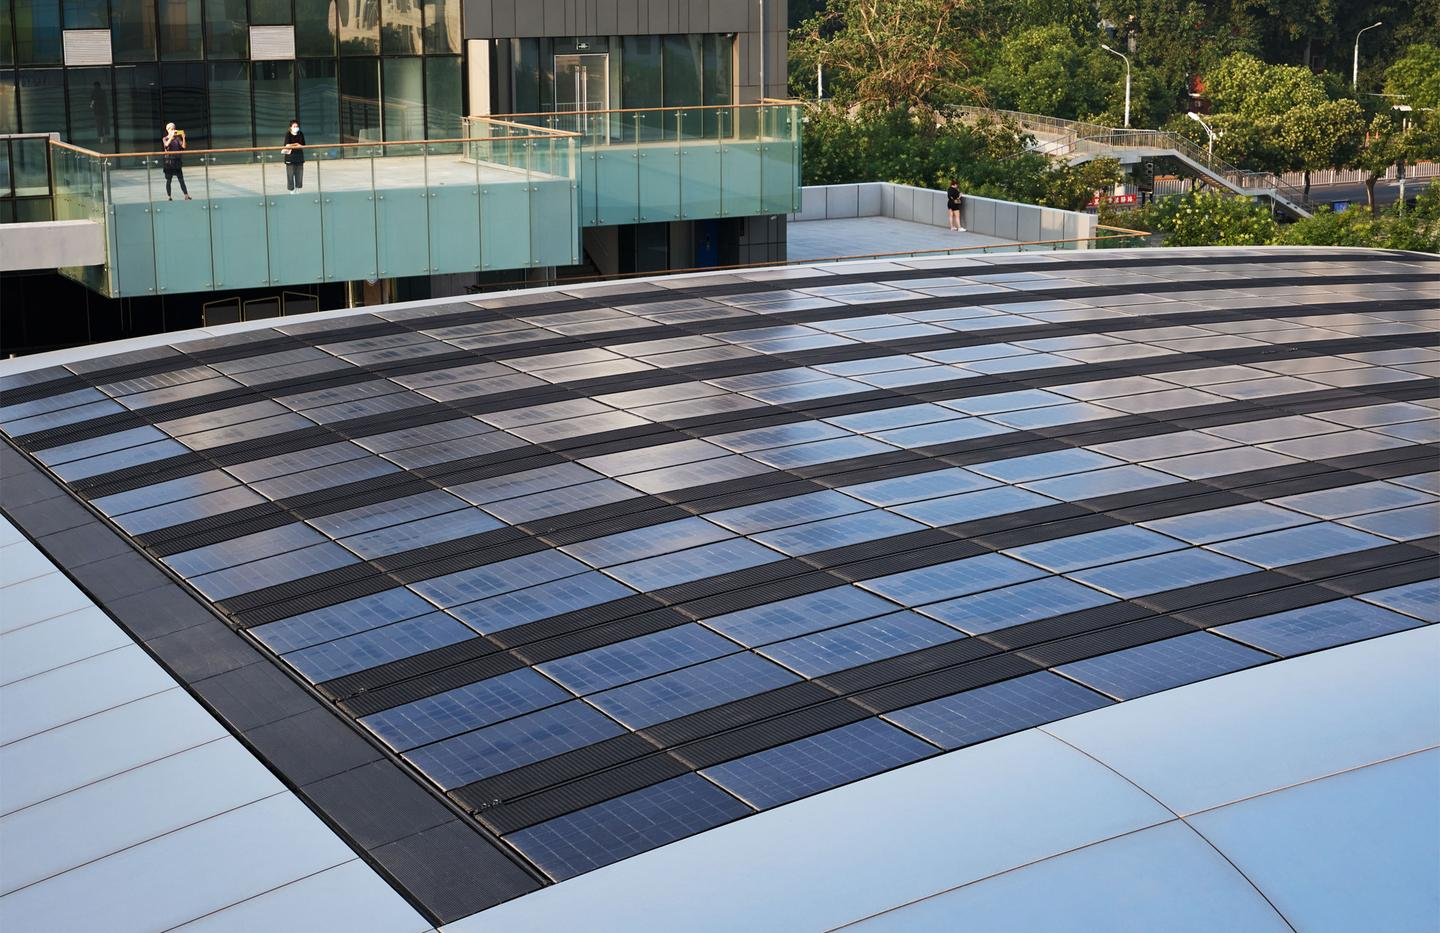 Apple Sanlitun's roof has 390 sq m (roughly 4,200 sq ft) of solar panels, reducing the store's grid-based electricity consumption